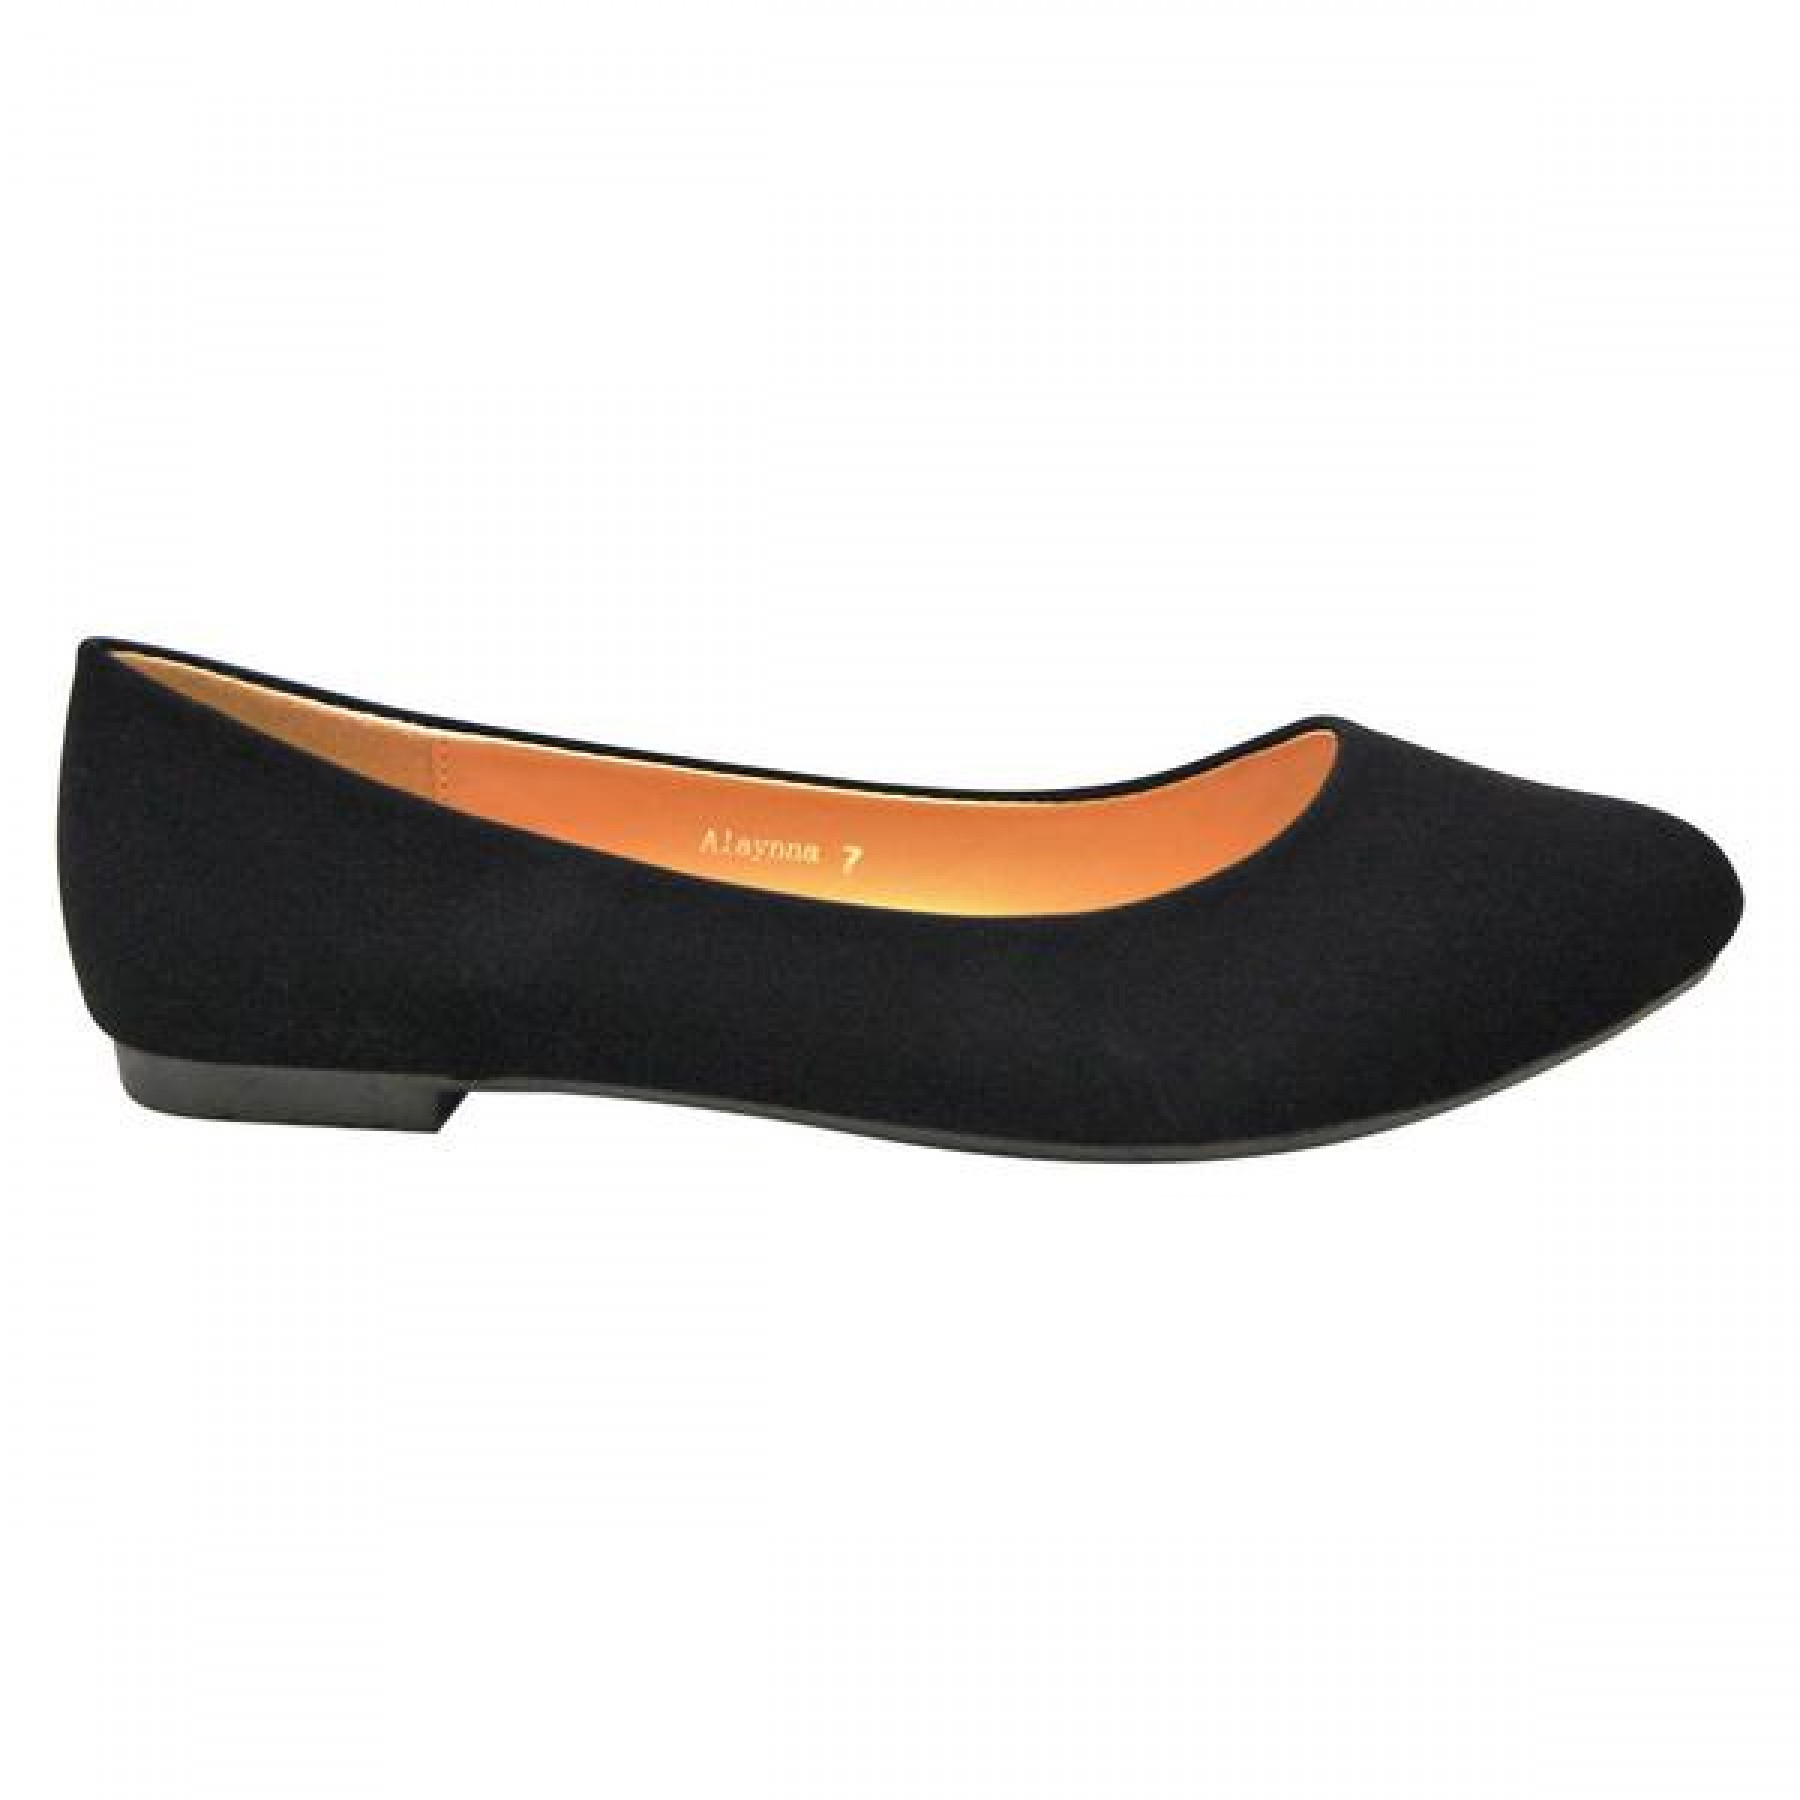 Women's Black Alaynna Smooth Pump Flat with Gently Pointed Toe